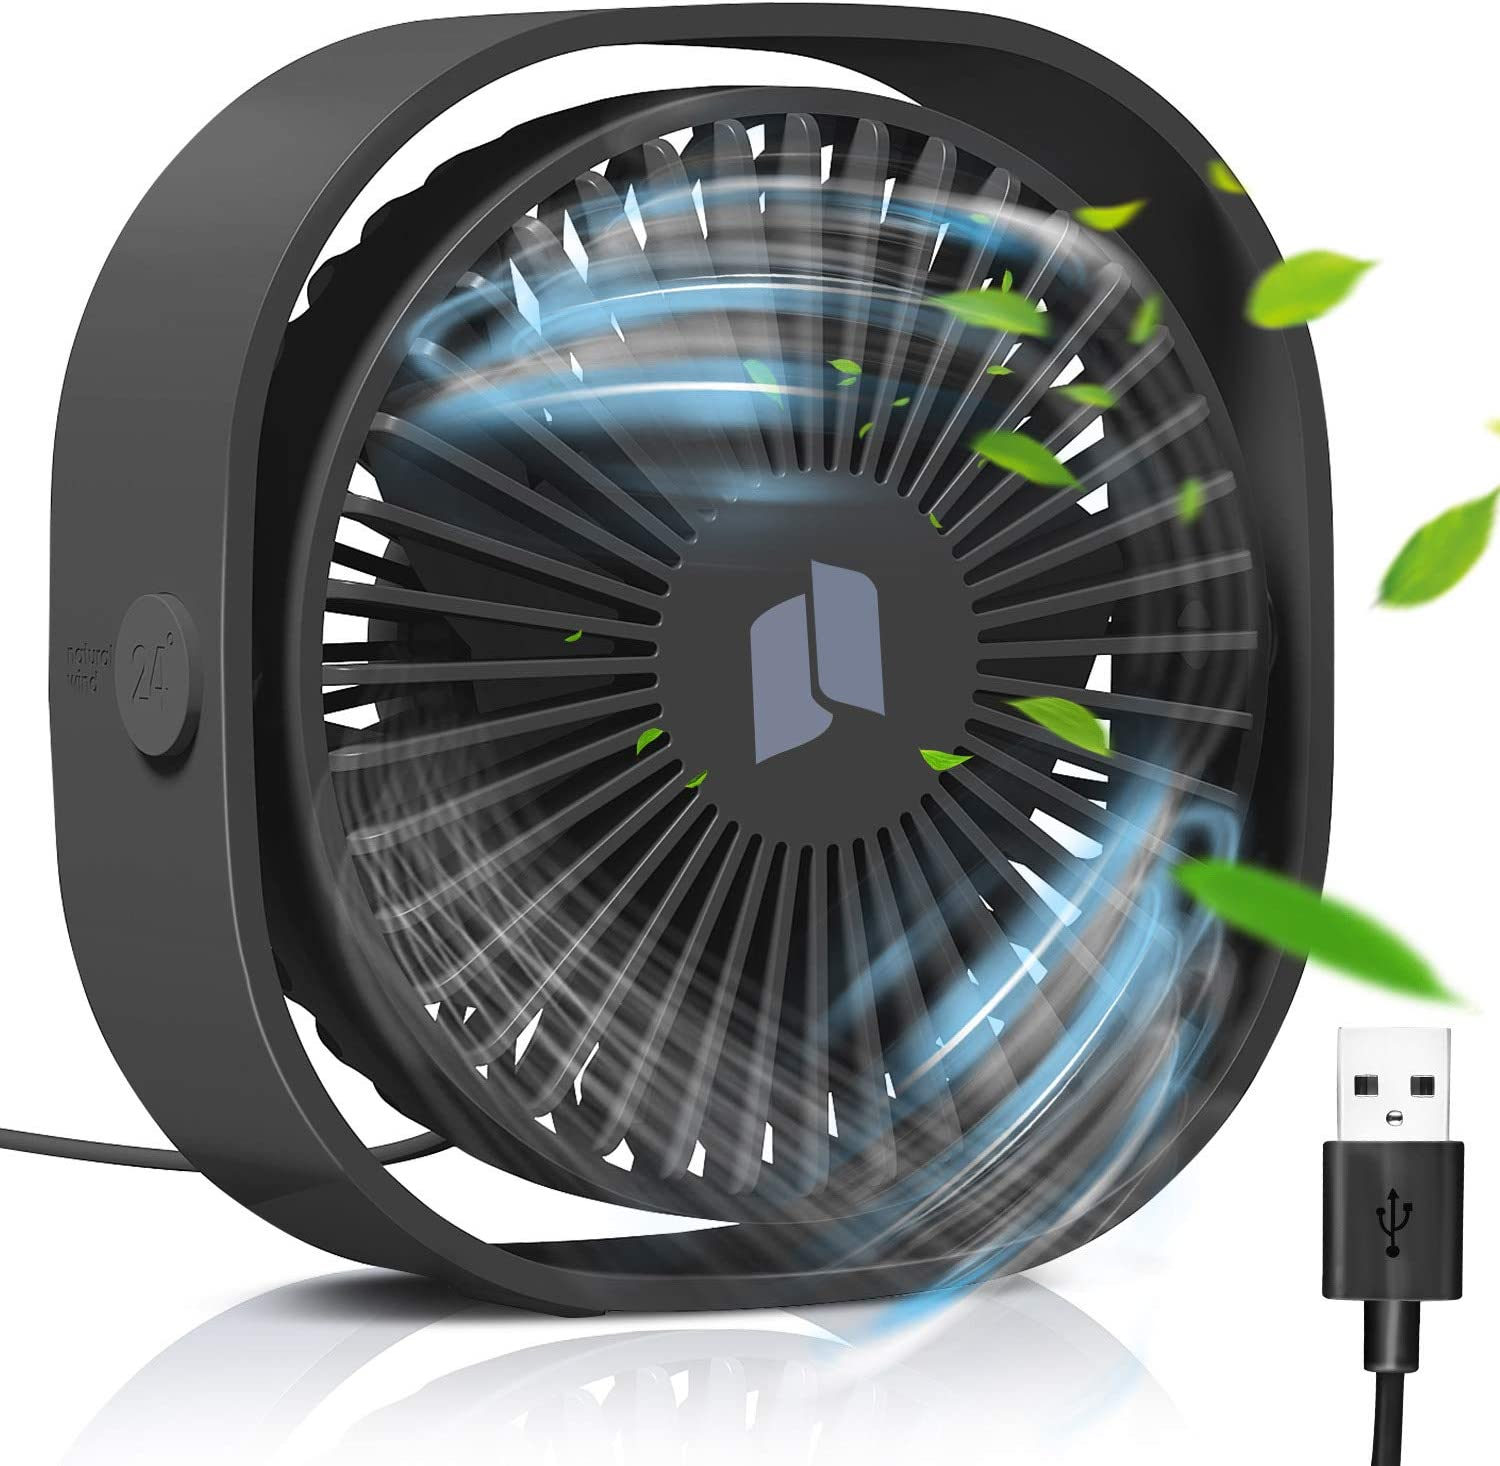 Gafild USB Desk Fan, Small Table Personal Portable Mini Fan with Enhanced Airflow, 3 Speeds Perfect Personal Cooling Fan for Home Office Table